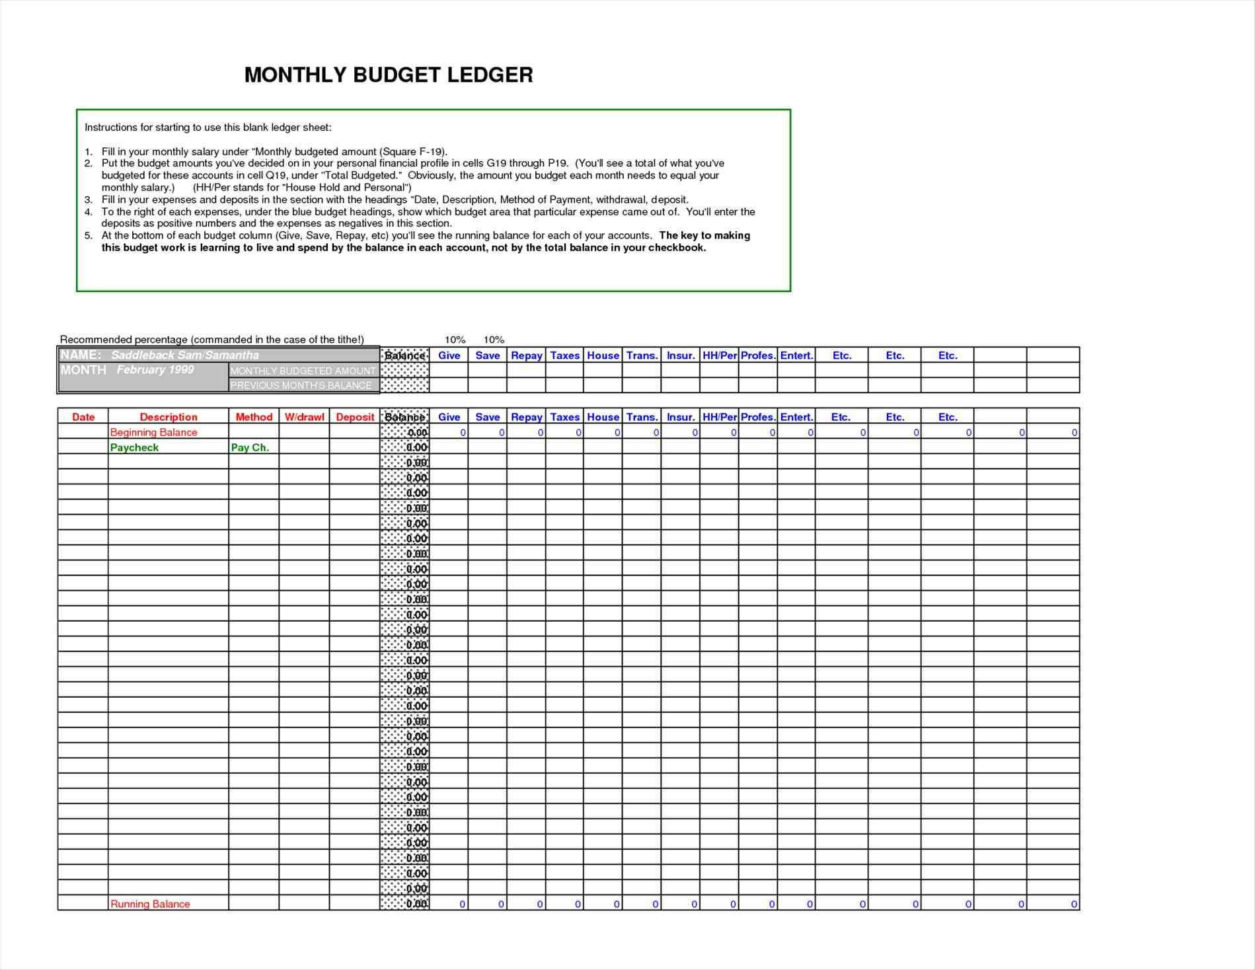 Excel Ledger Template Fresh Berühmt Druckbare Accounting Ledger To Excel Accounting Ledger Template